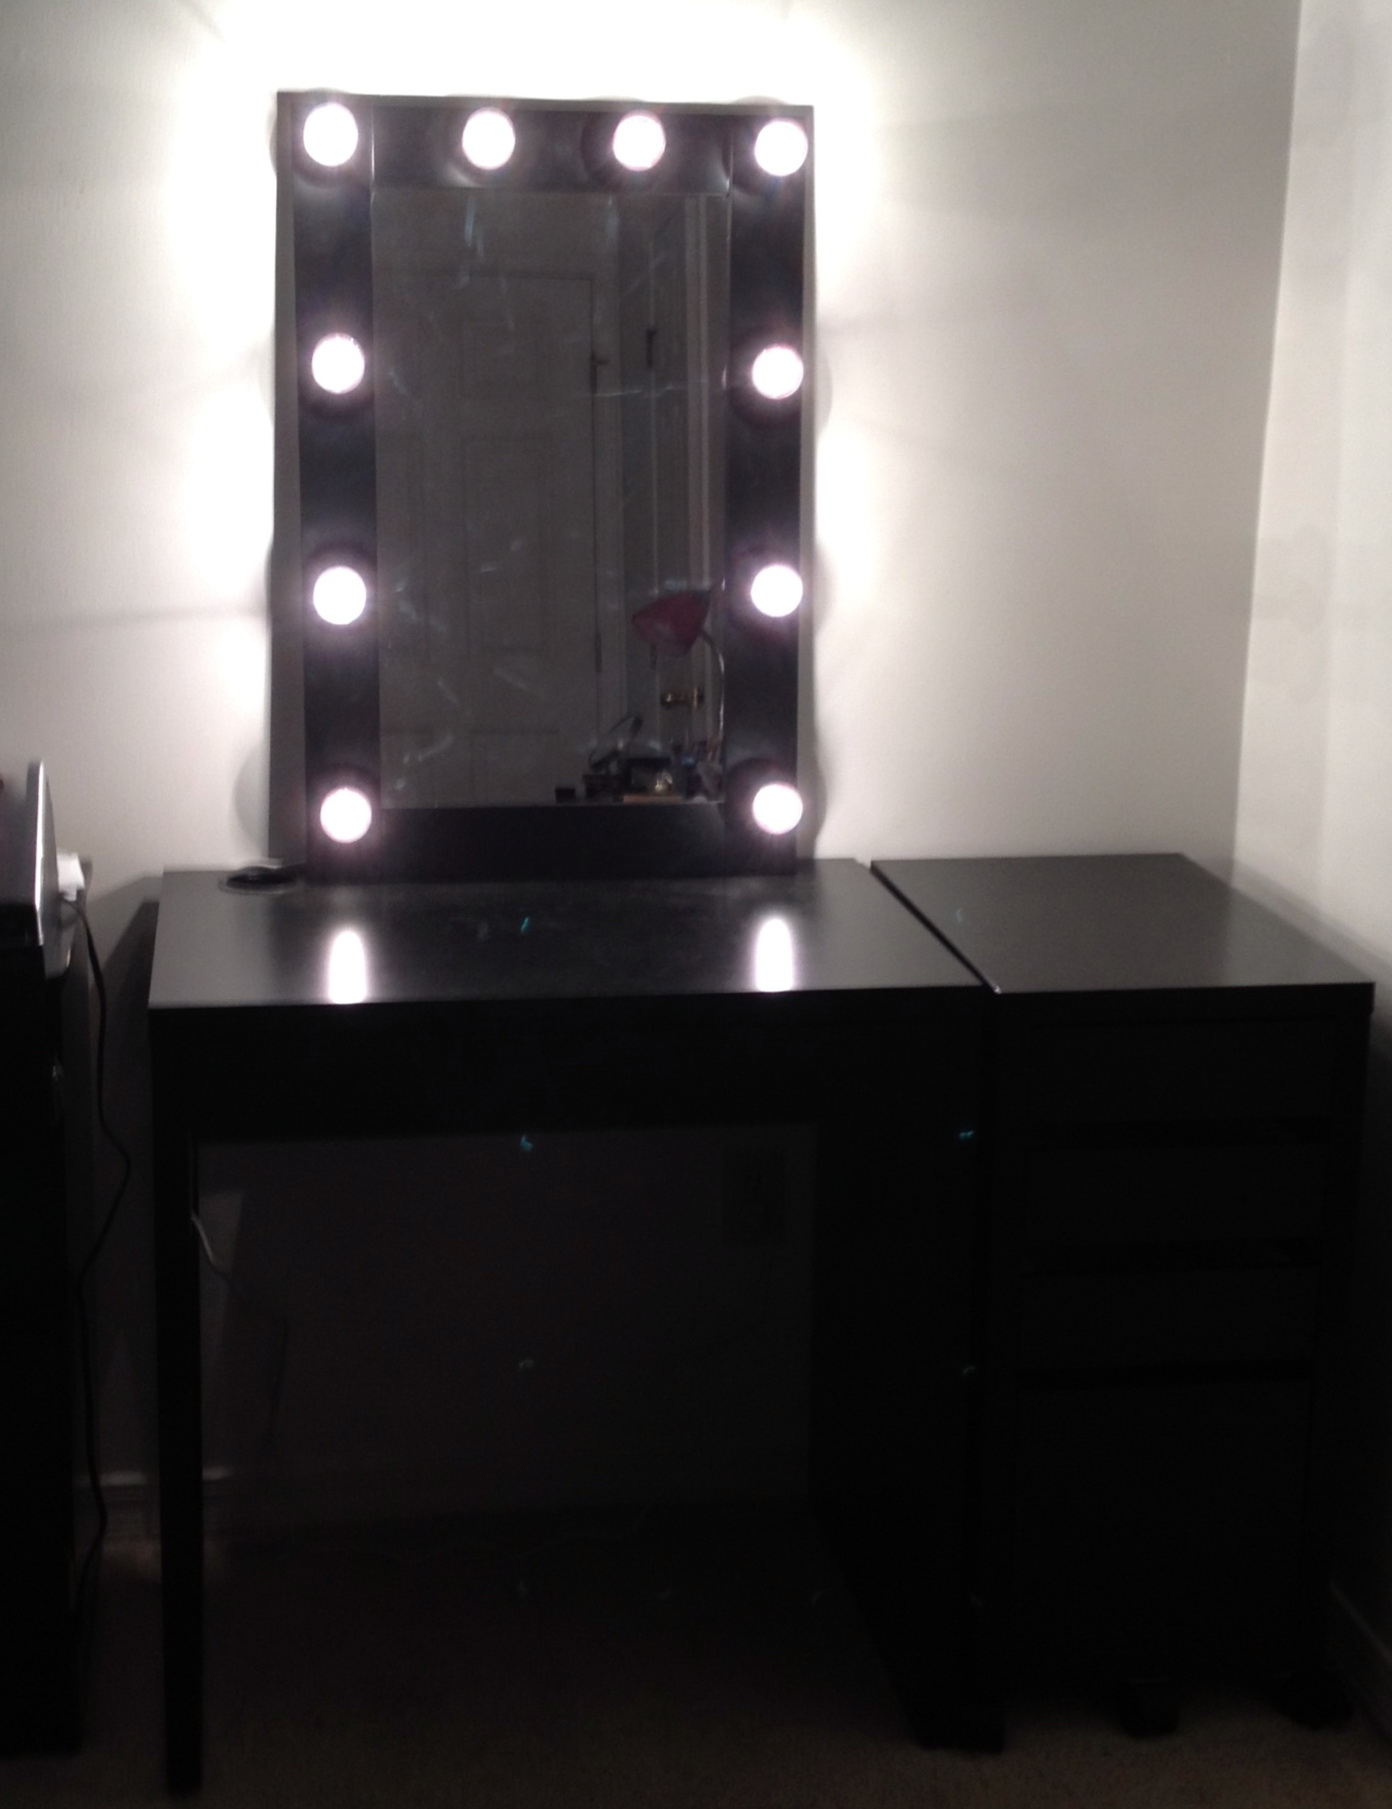 Definition Of Vanity Light : Light Up Mirror Vanity Ikea Light Up Vanity Mirror Light Up Makeup Vanity Mirror Home ...